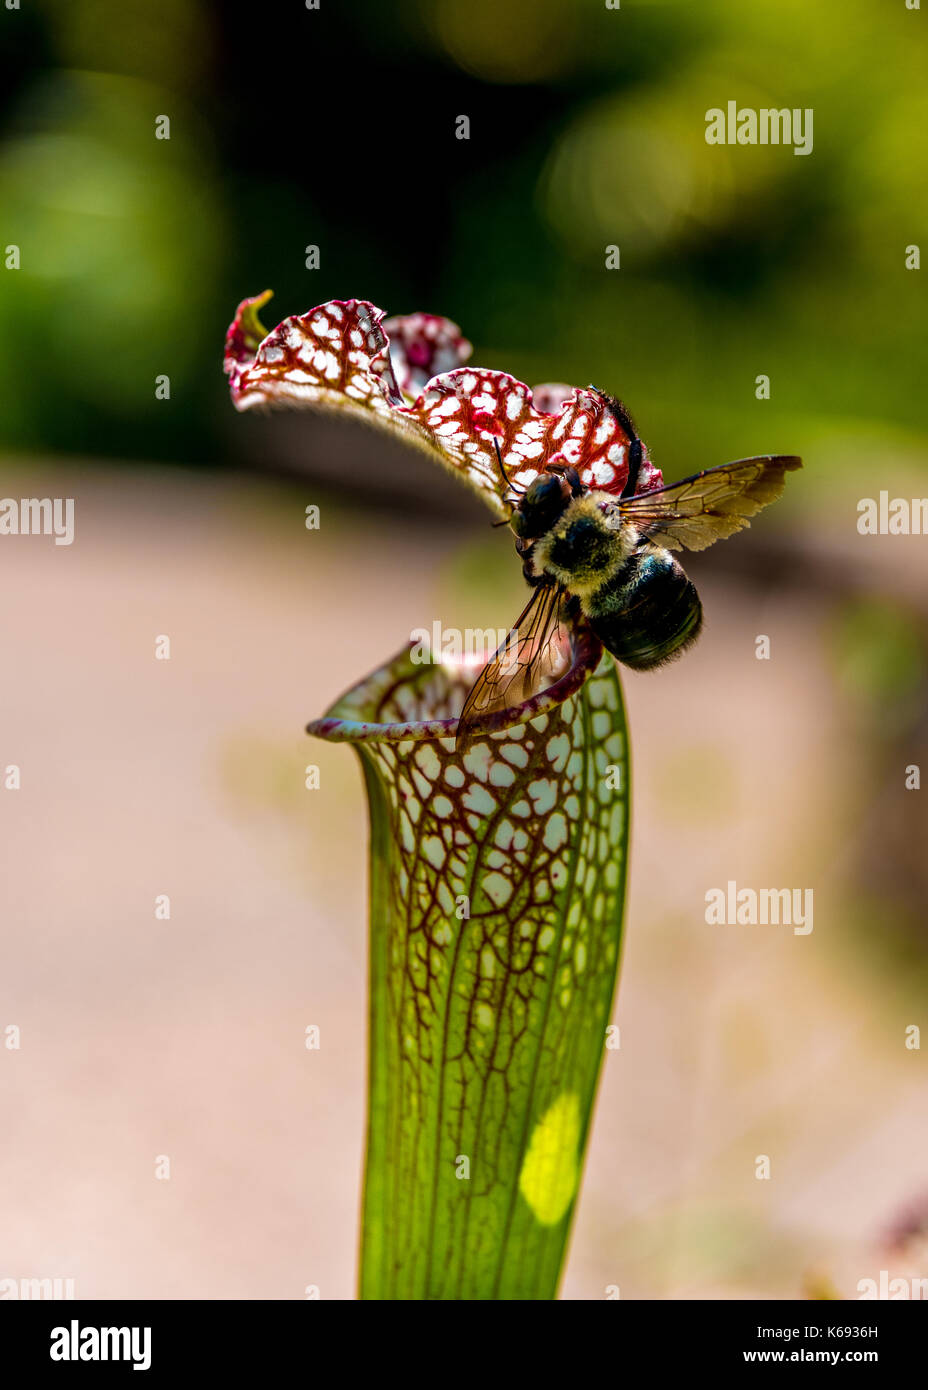 Pollinator bee on edge of a green pitcher plant with red edges and veins, a native plant of North Carolina, USA. - Stock Image